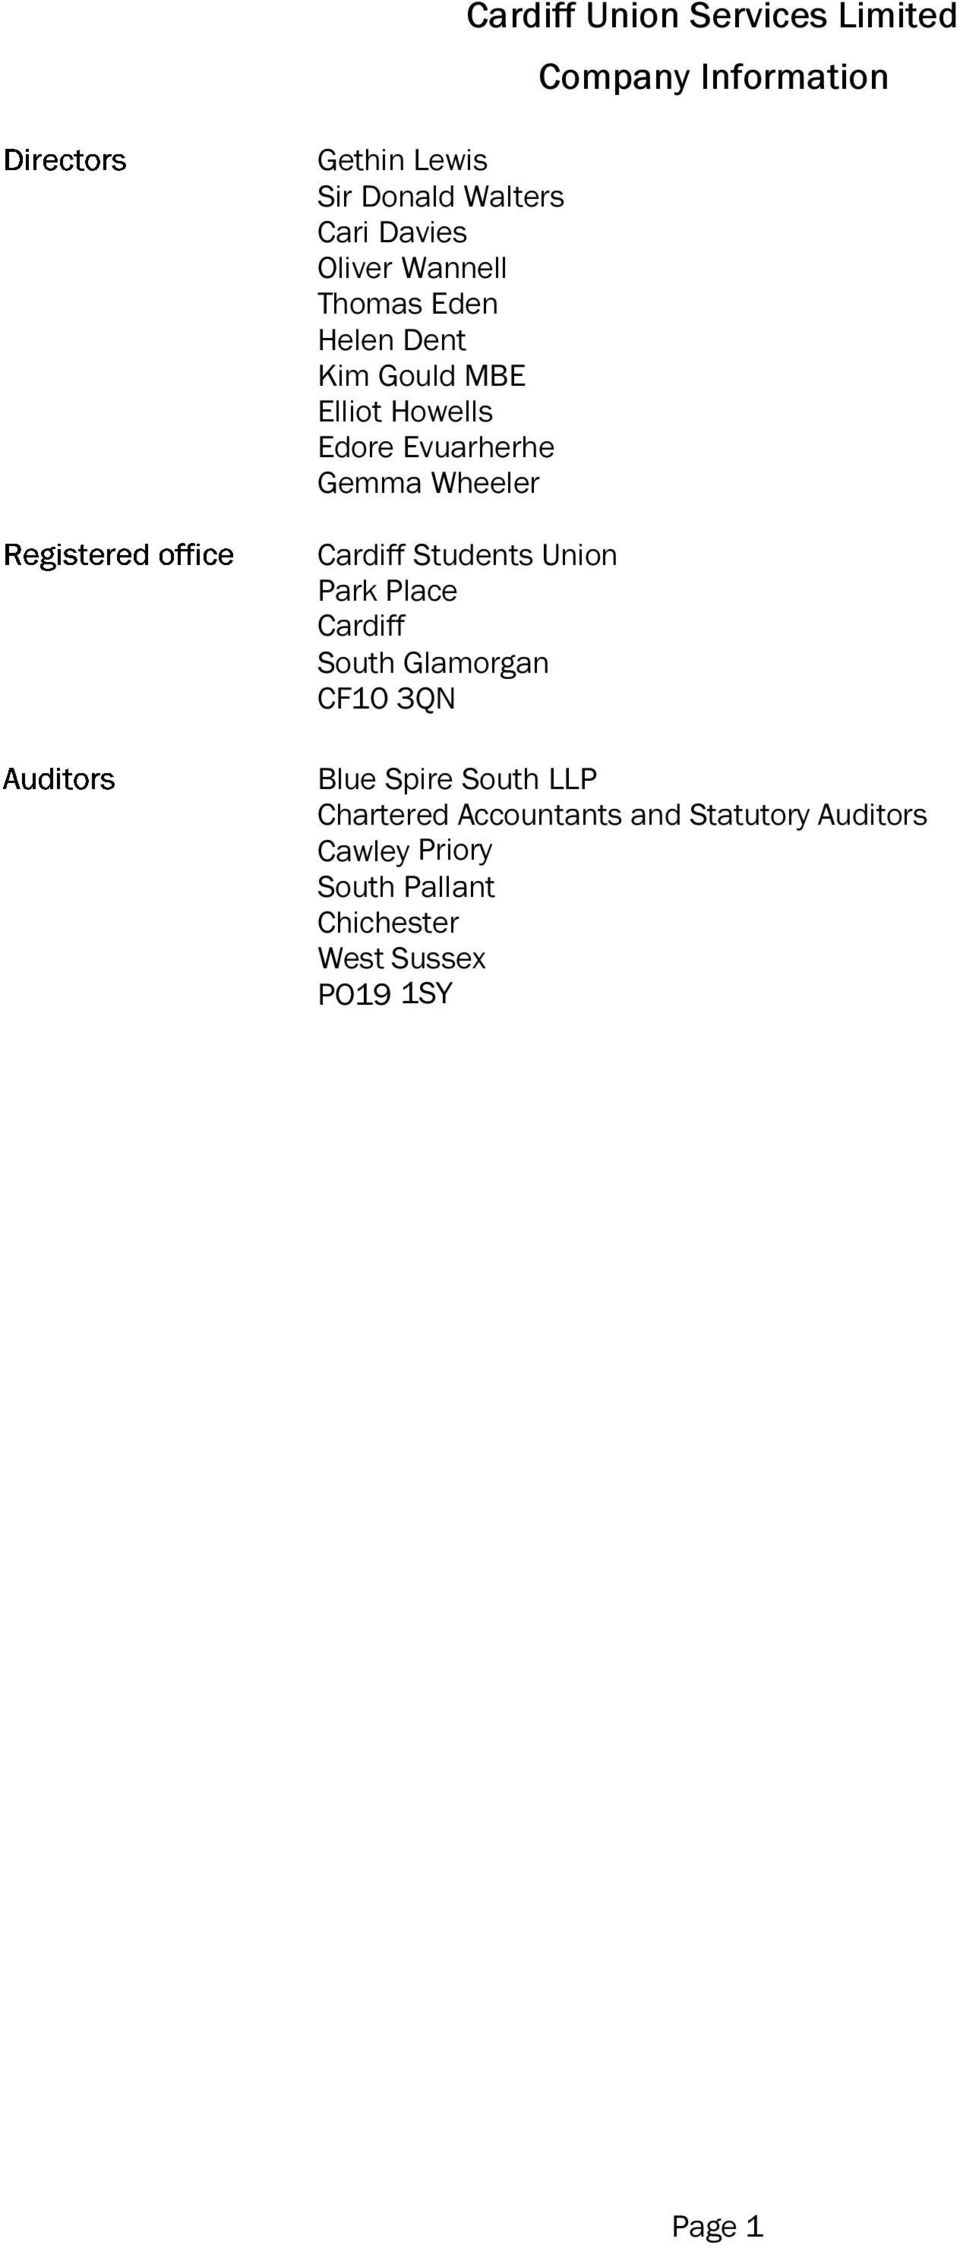 Cardiff South Glamorgan CF10 3QN Company Information Blue Spire South LLP Chartered